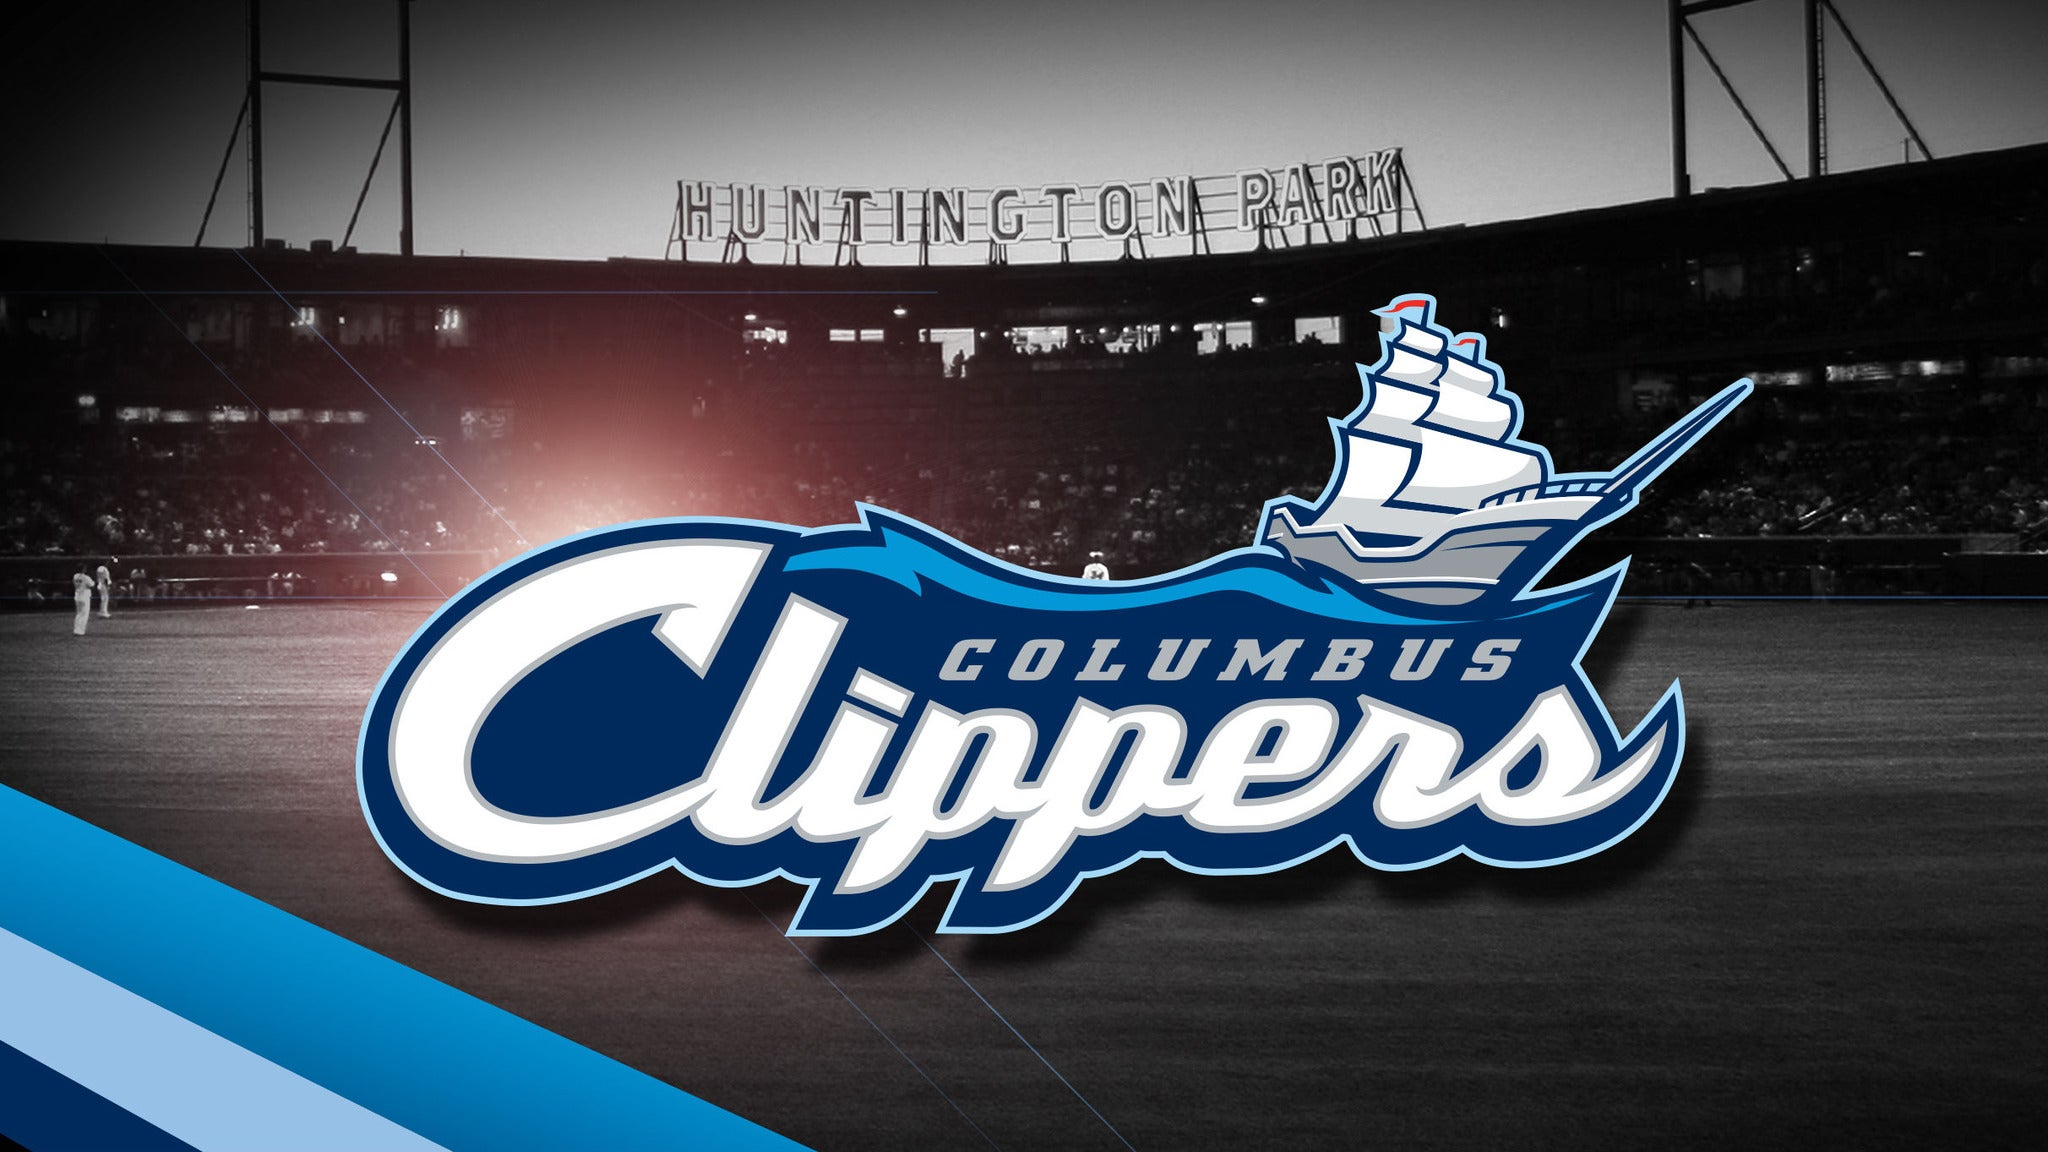 Columbus Clippers vs. Toledo Mud Hens